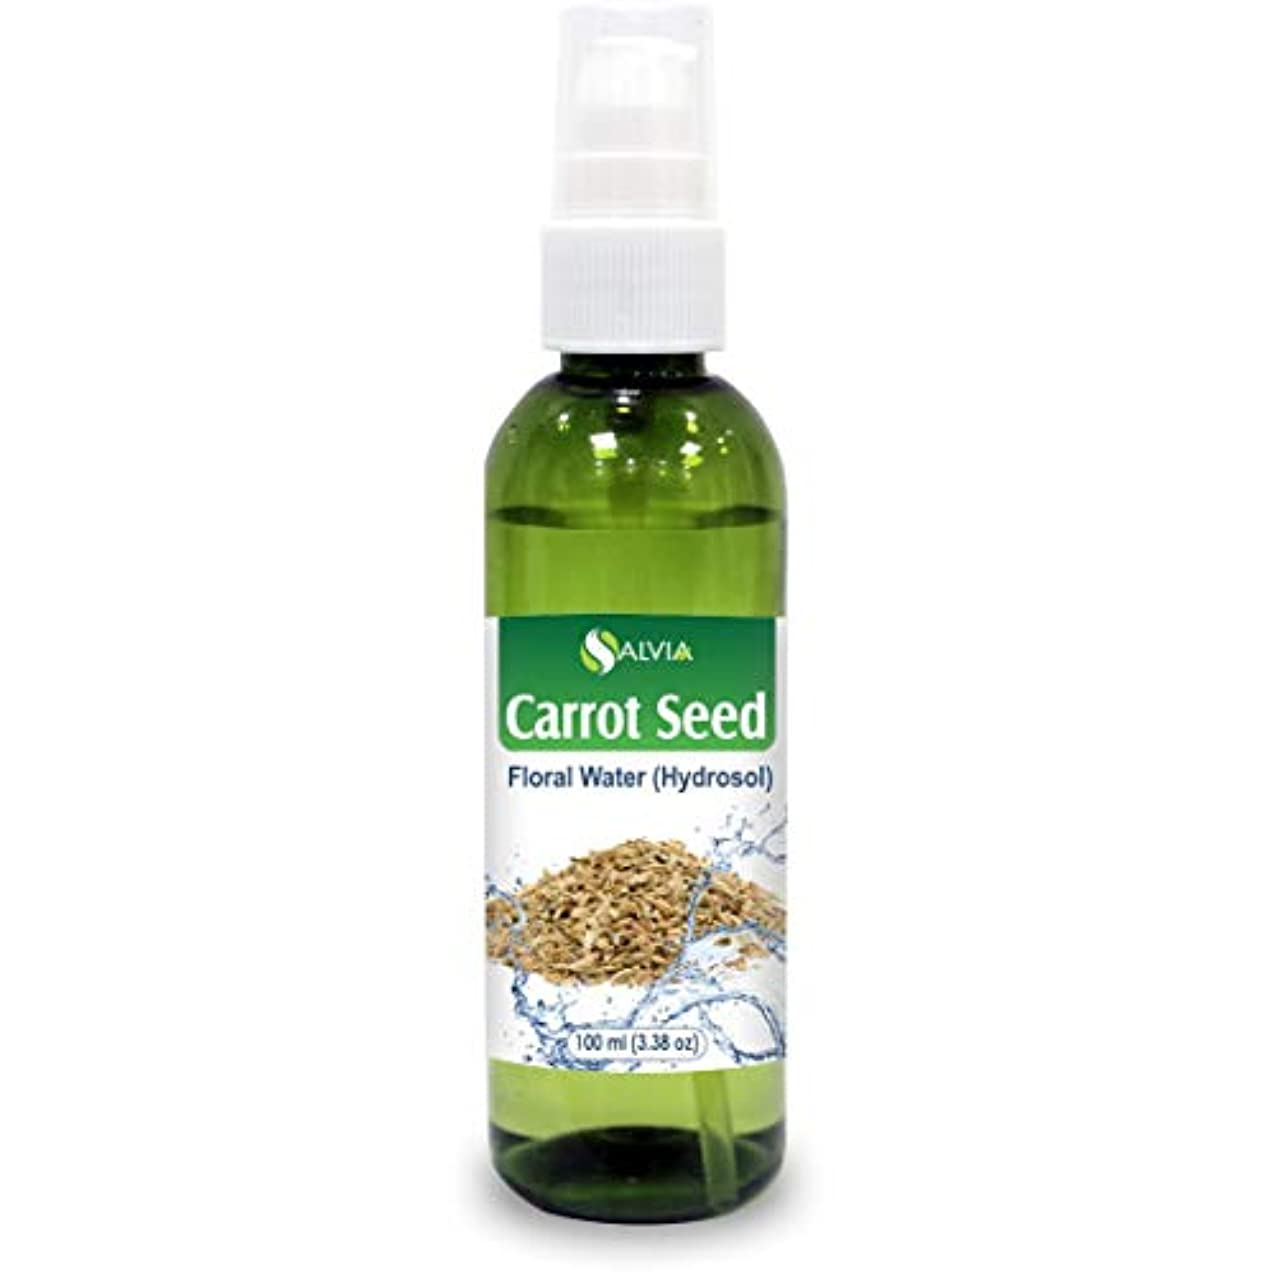 信頼性のあるサルベージインフルエンザCarrot Seed Floral Water Floral Water 100ml (Hydrosol) 100% Pure And Natural